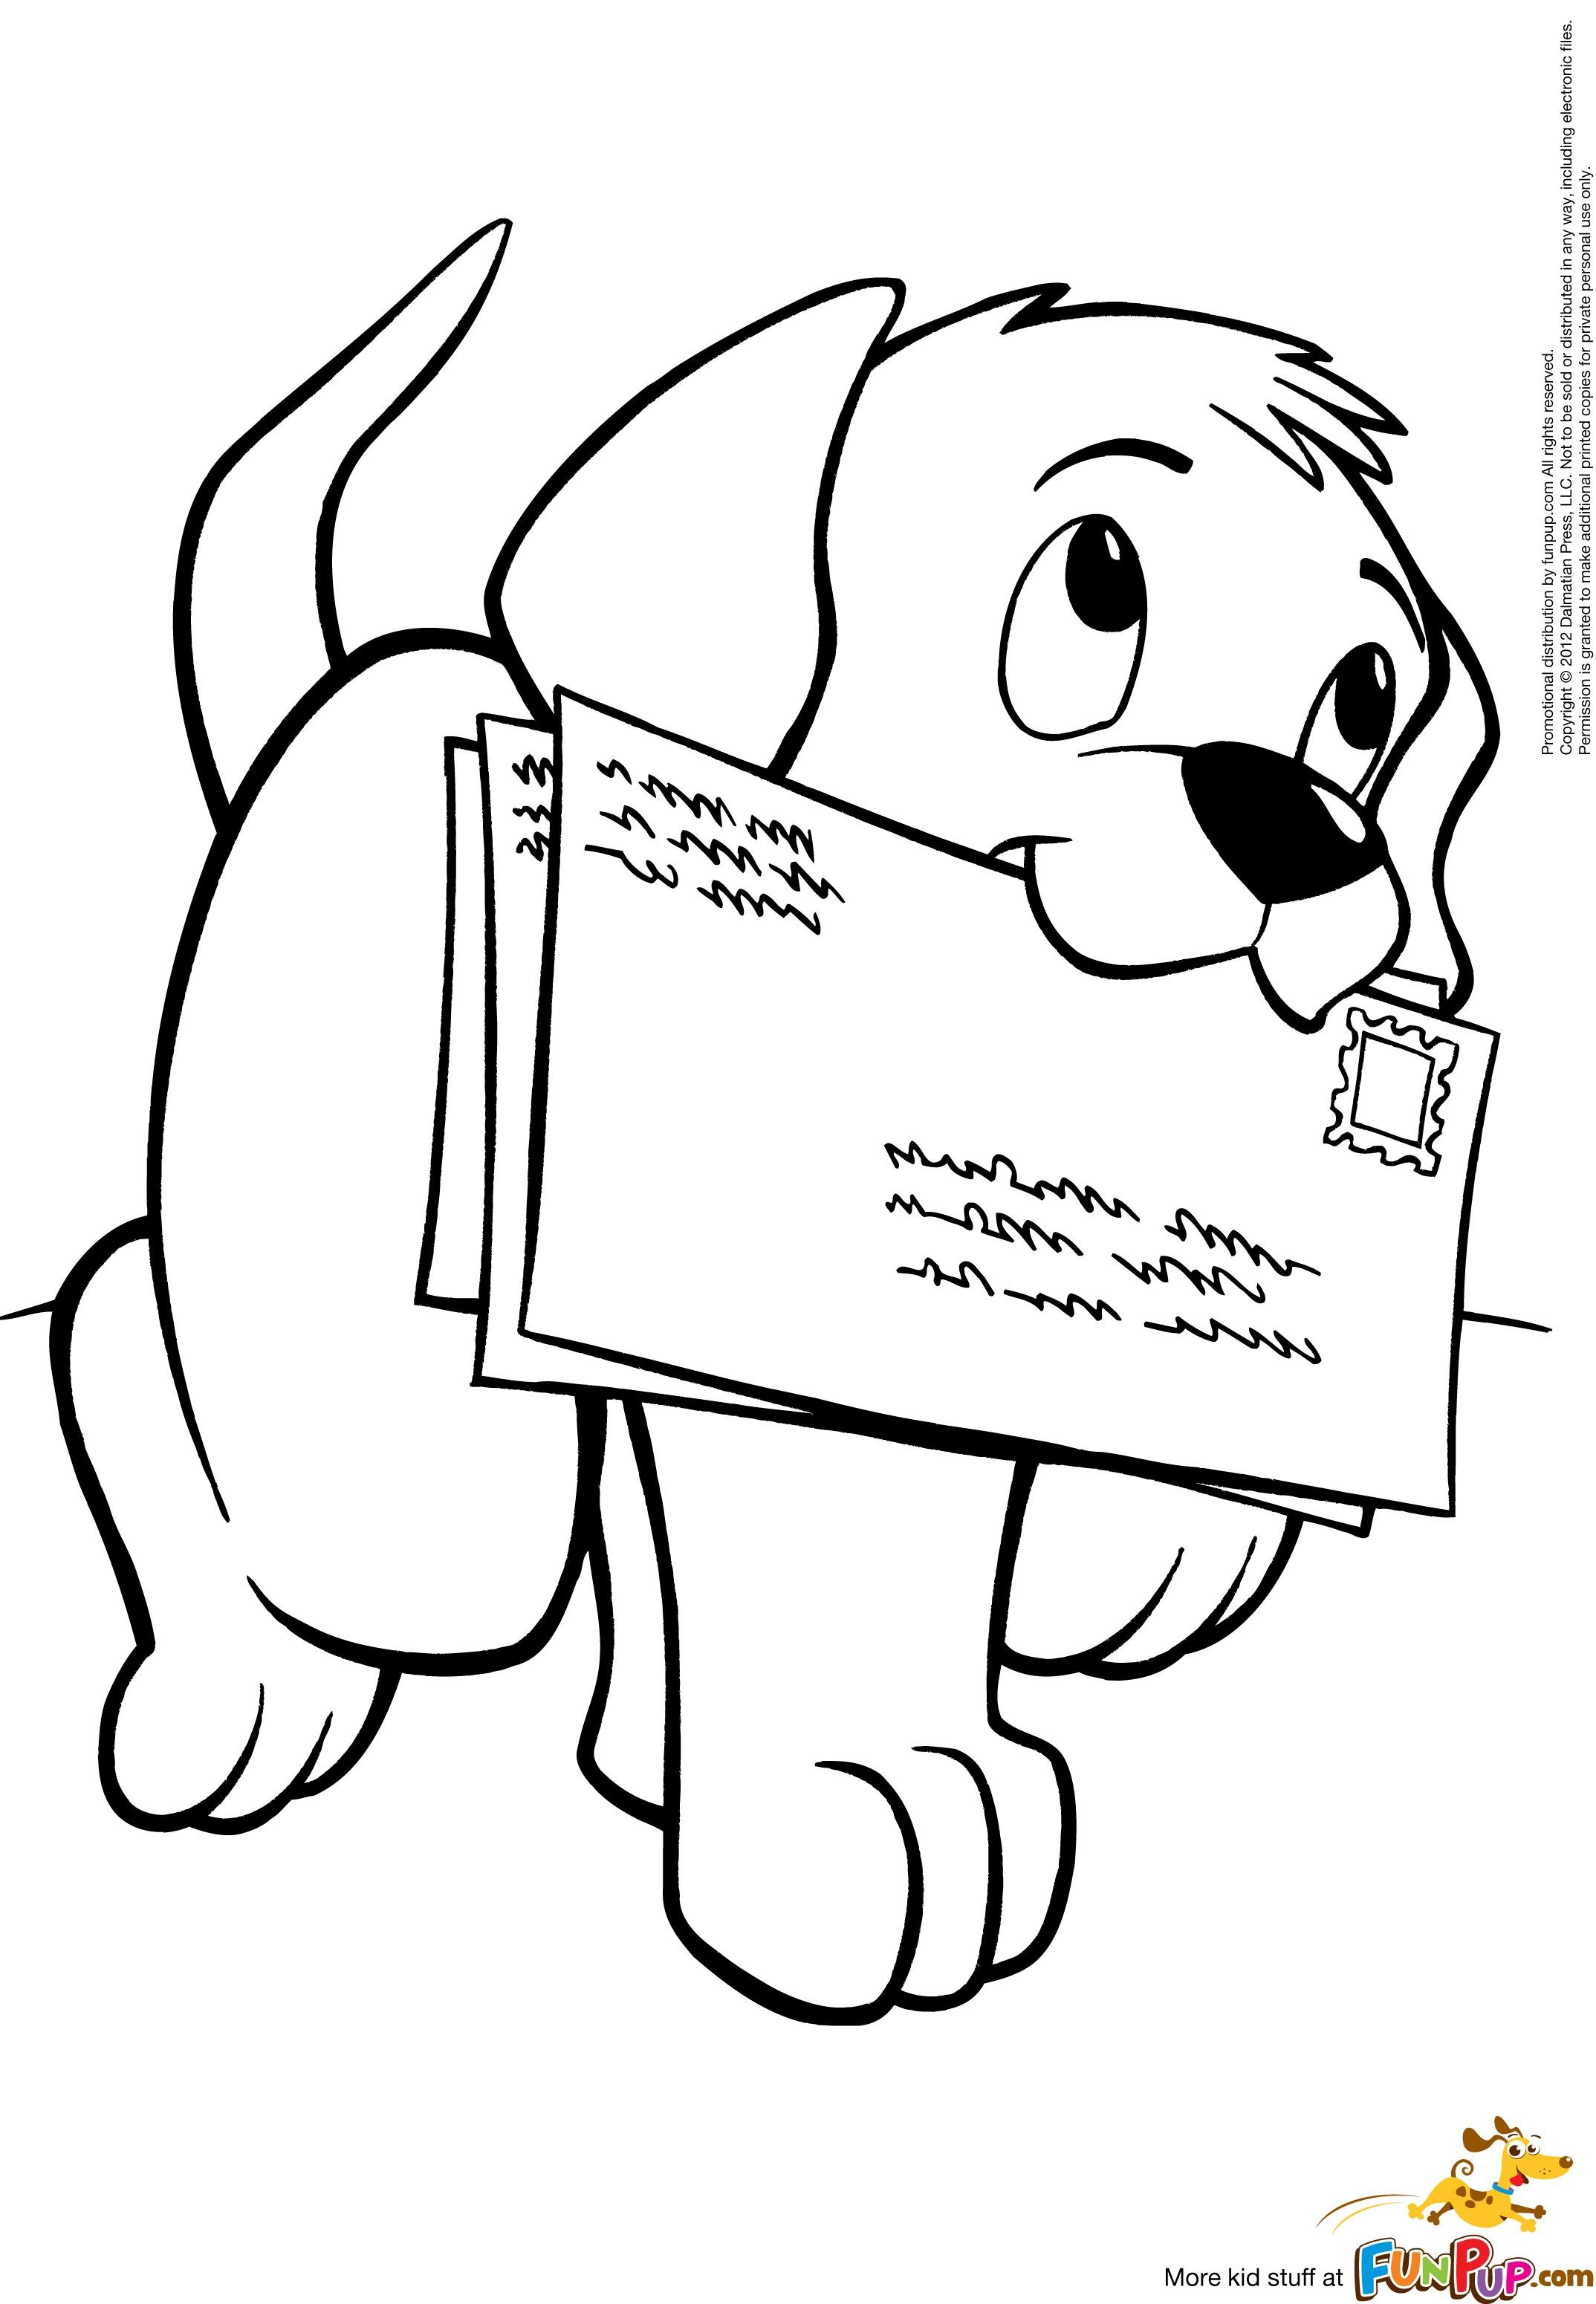 free puppy dog carrying letters to mail printable coloring page it would be fun to print this onto an envelope or make an envelope out of the printed - Free Dog Coloring Pages